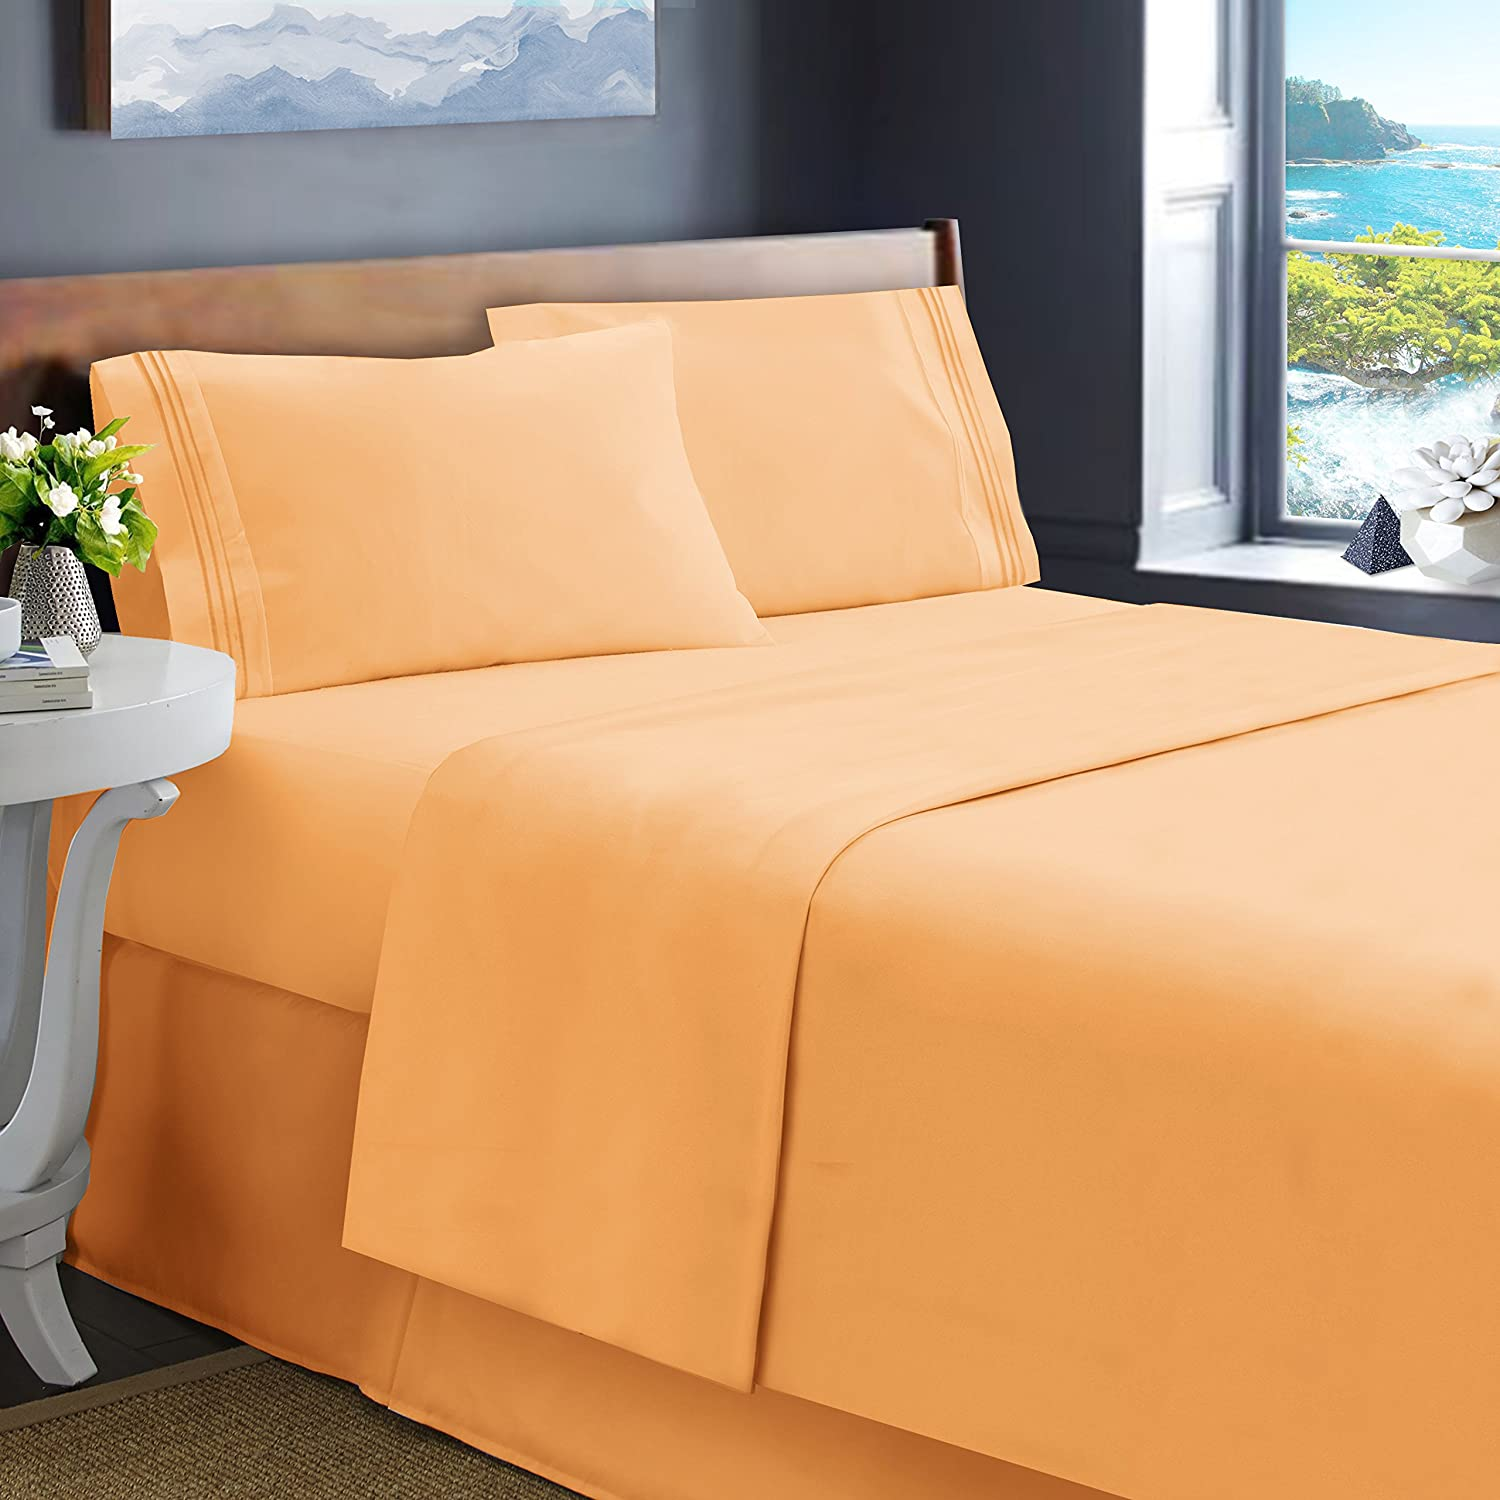 Hearth & Harbor King Size Bed Sheets, Apricot Orange - Soft Luxury Best Quality 4-Piece Bed Set